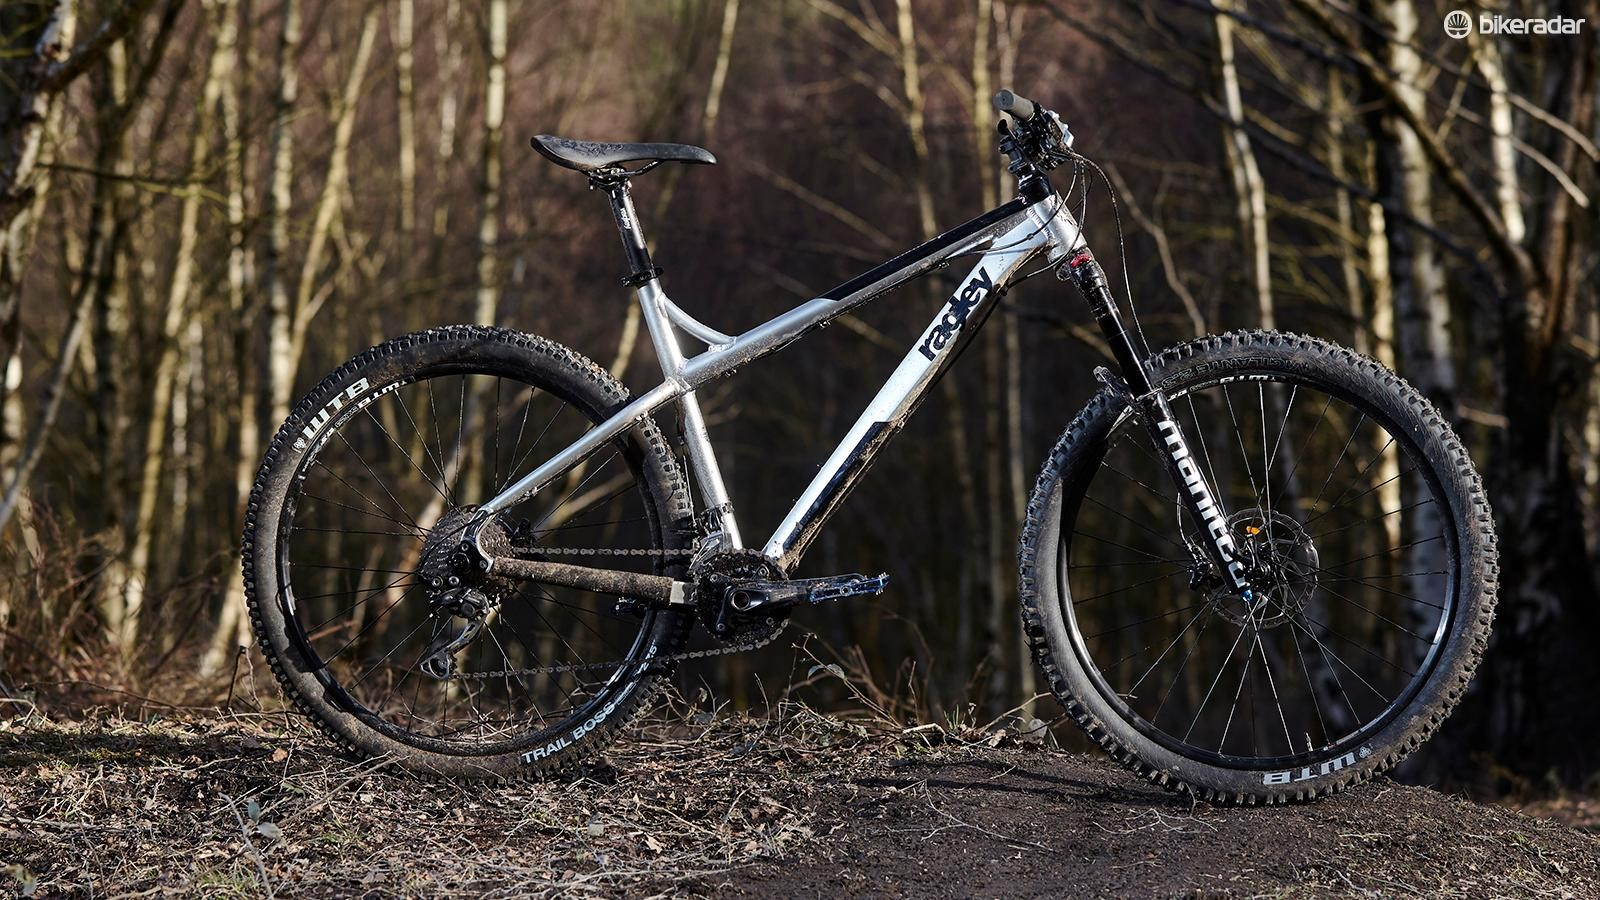 Ragley's Mmmbop 27.5 has an almost downhill-slack front end